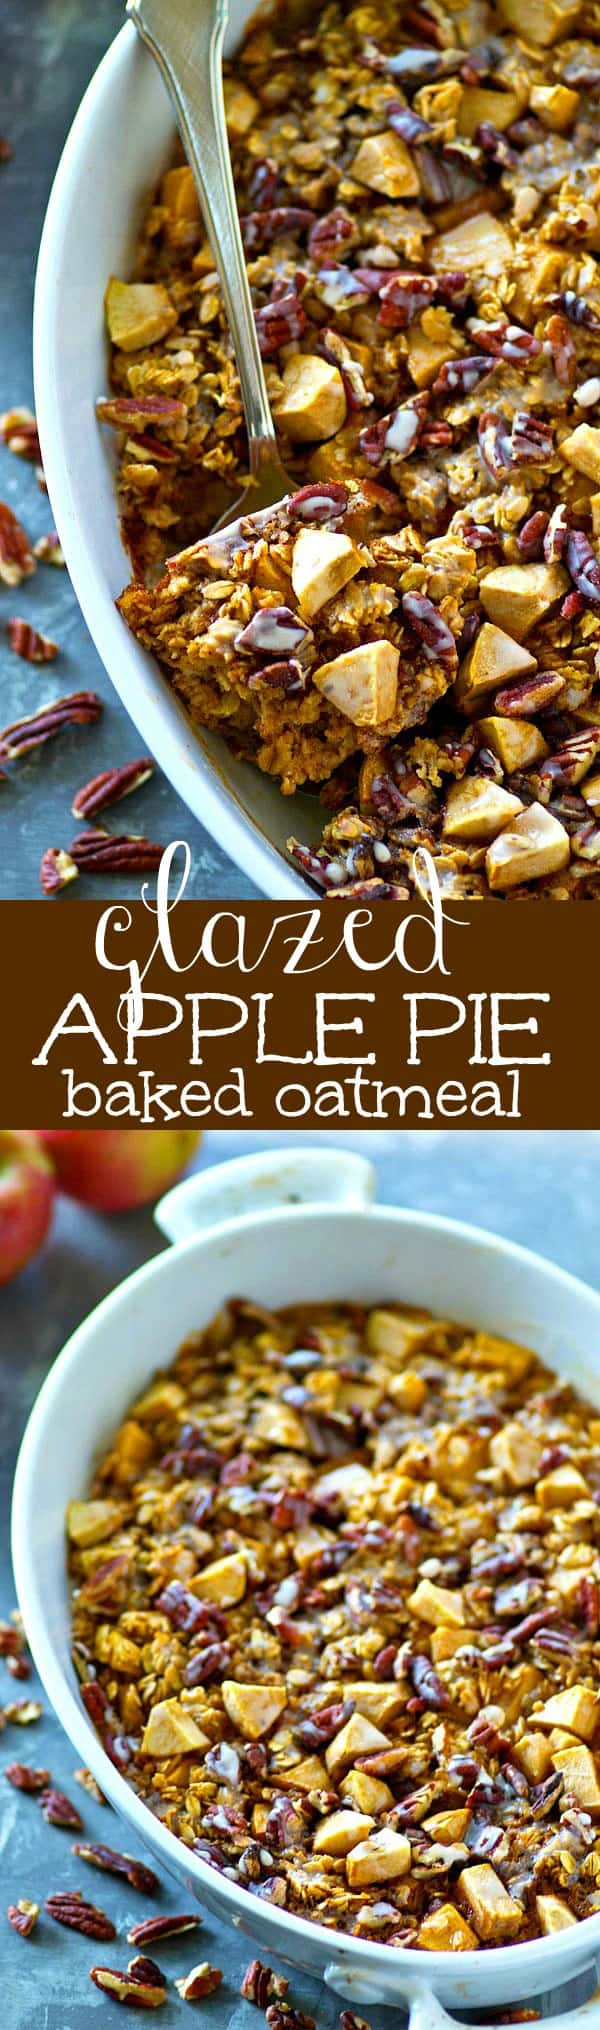 You'll find all the apple pie fixins' in this decadent glazed baked oatmeal! Tender apples, crunchy pecans, and sweet glaze make it the ultimate (and easiest!) morning oatmeal.